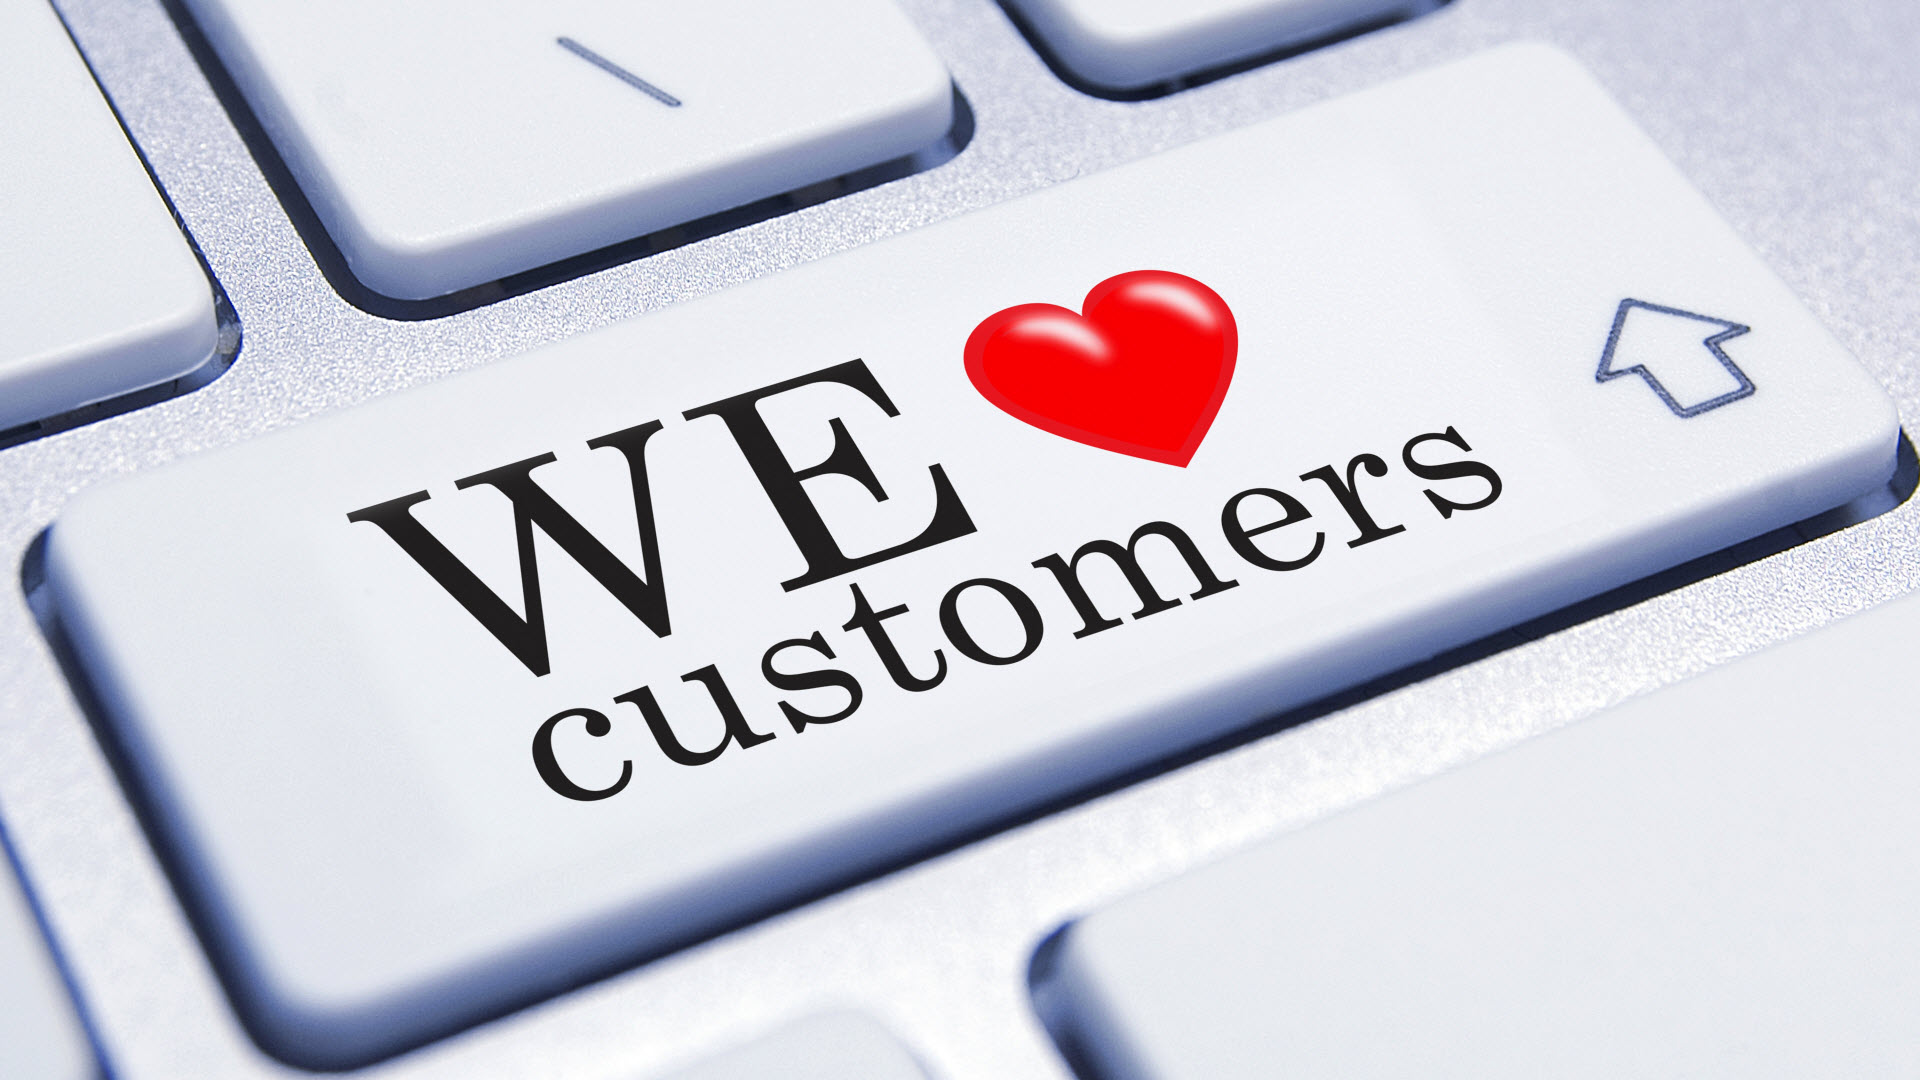 we_love_customers-1920x1080-72dpi